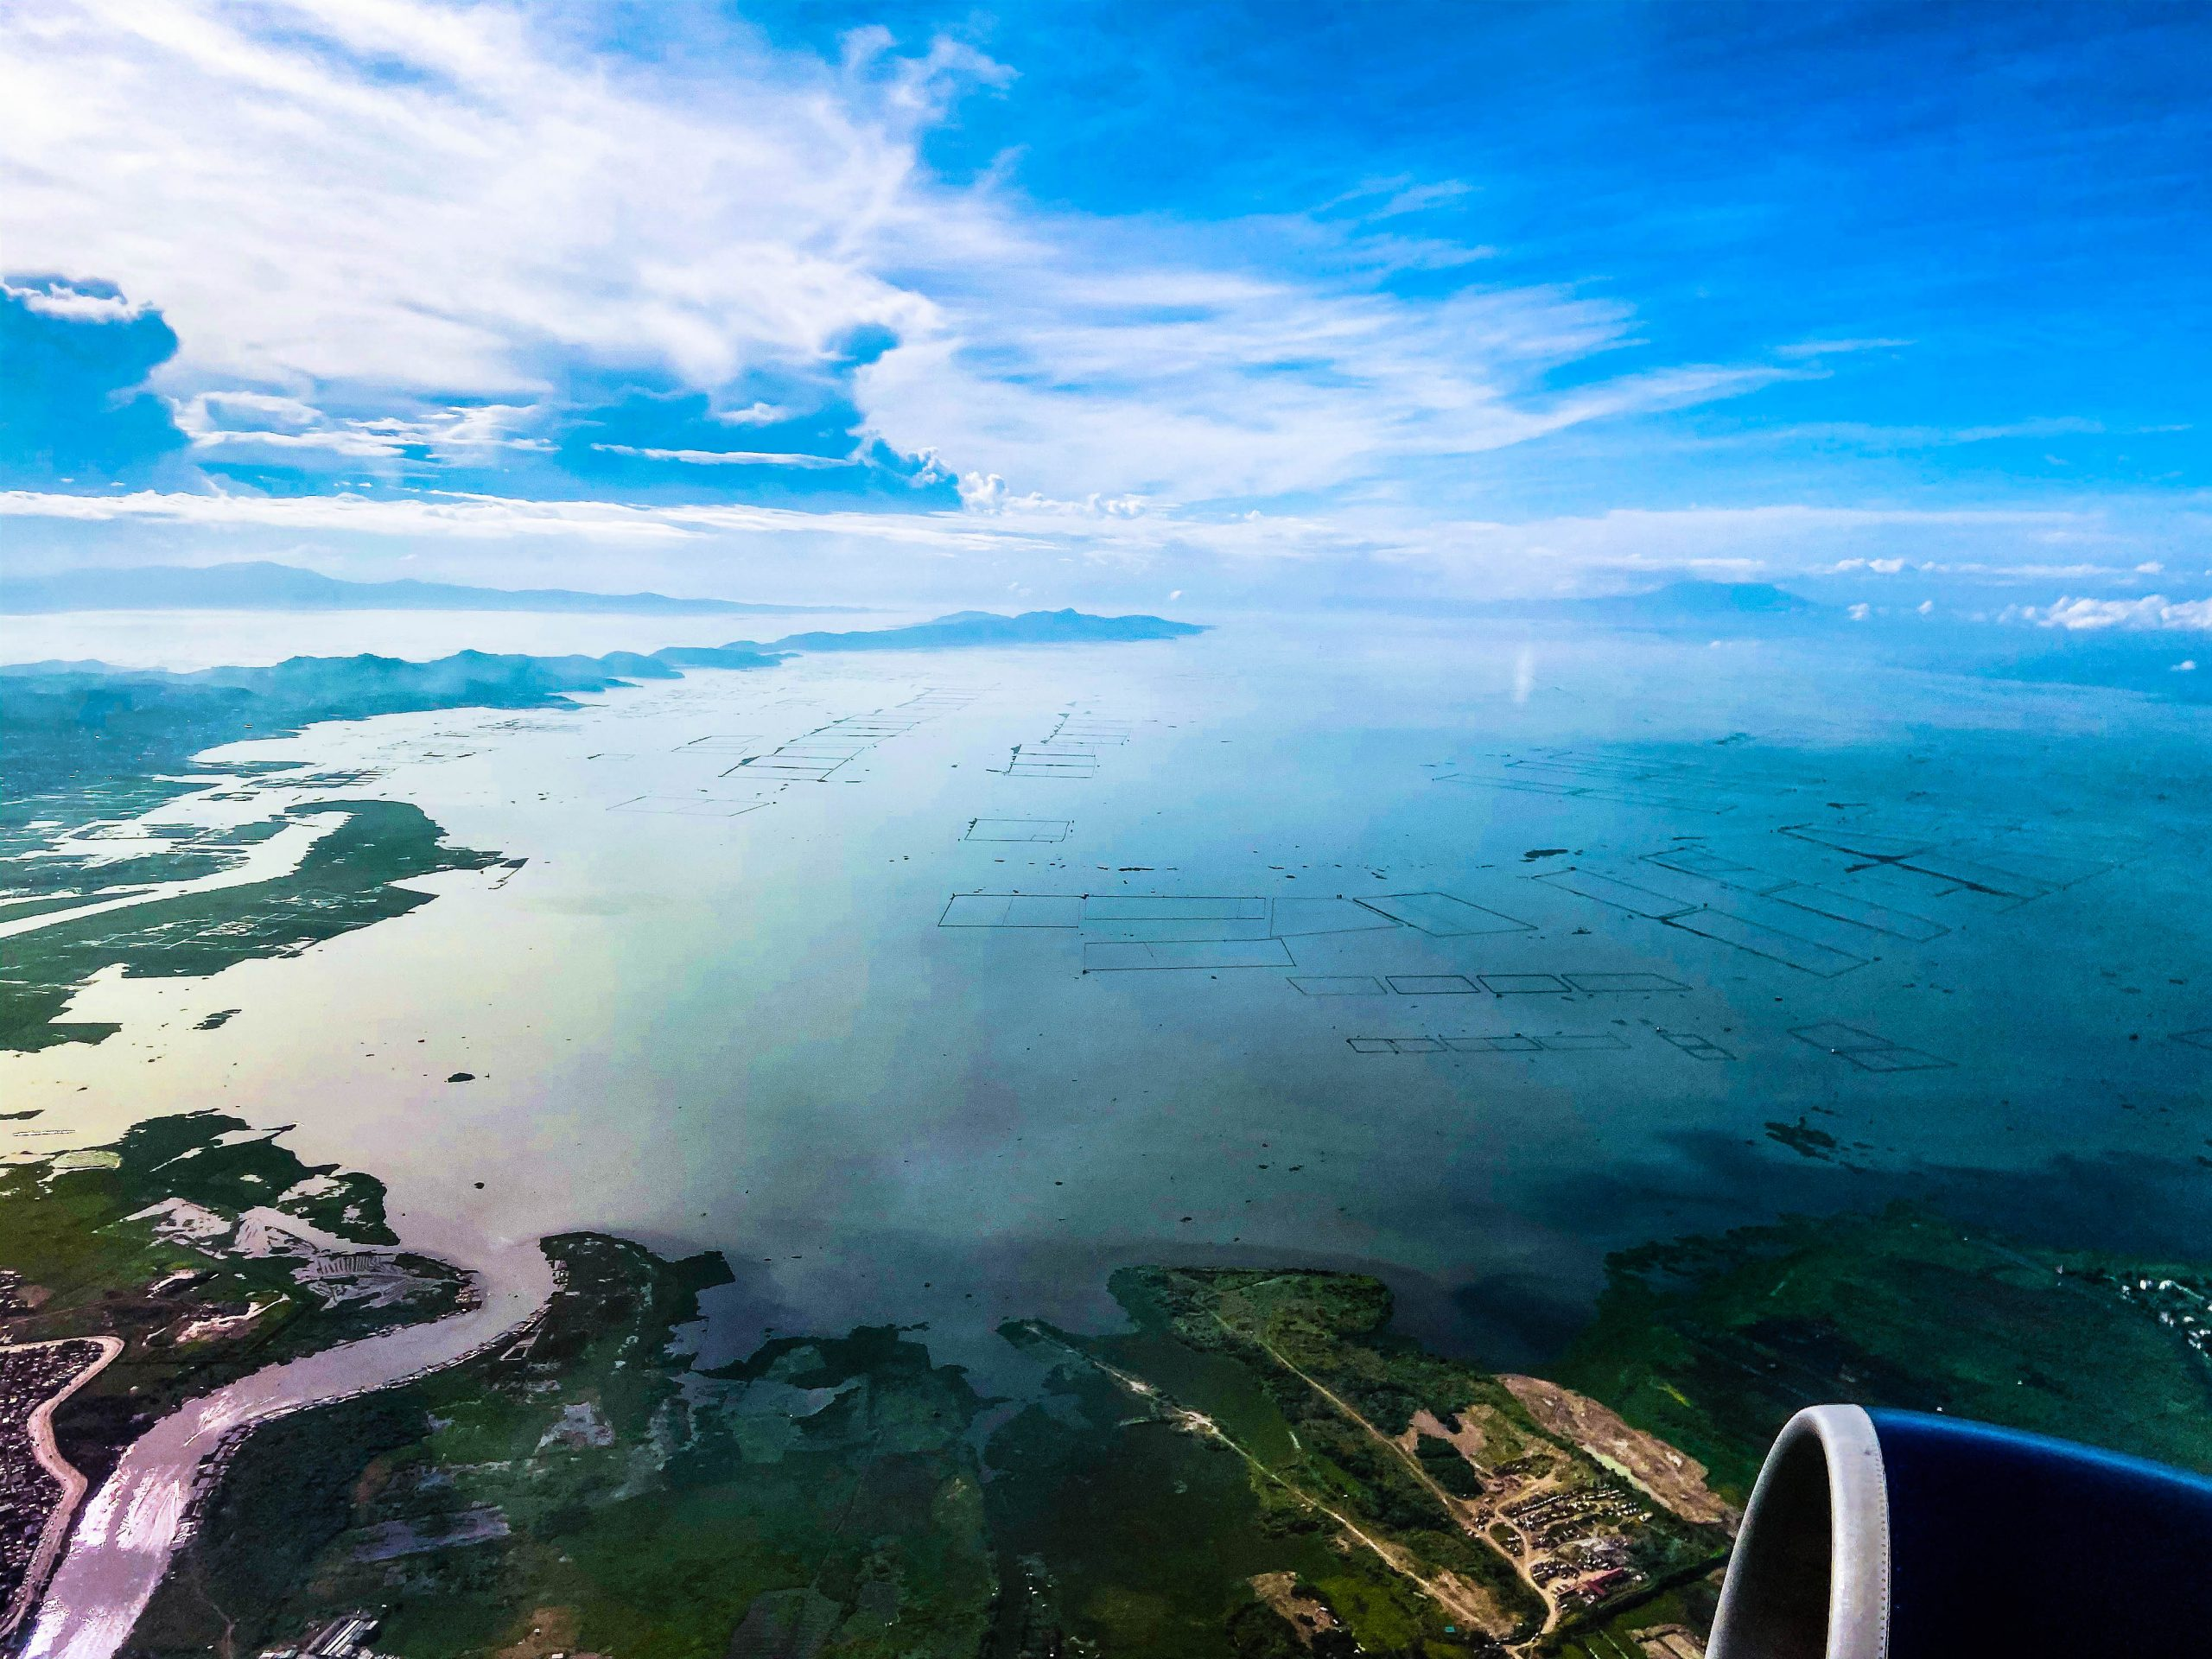 An aerial view of a wide body of water (Laguna de Bay, to be specific, the largest of all lakes in the Philippines)